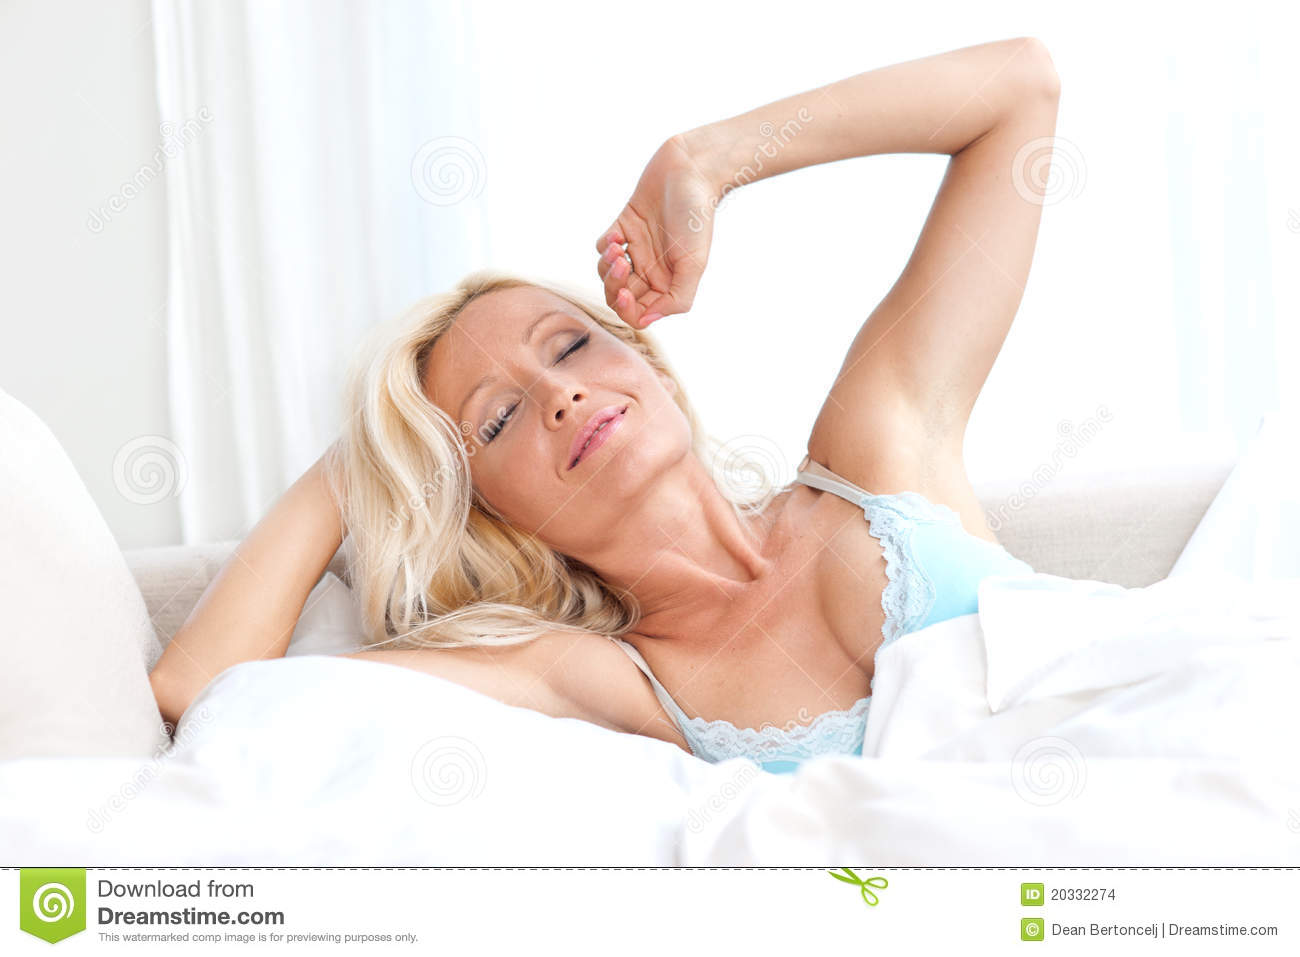 Once fucked mature sexy women who